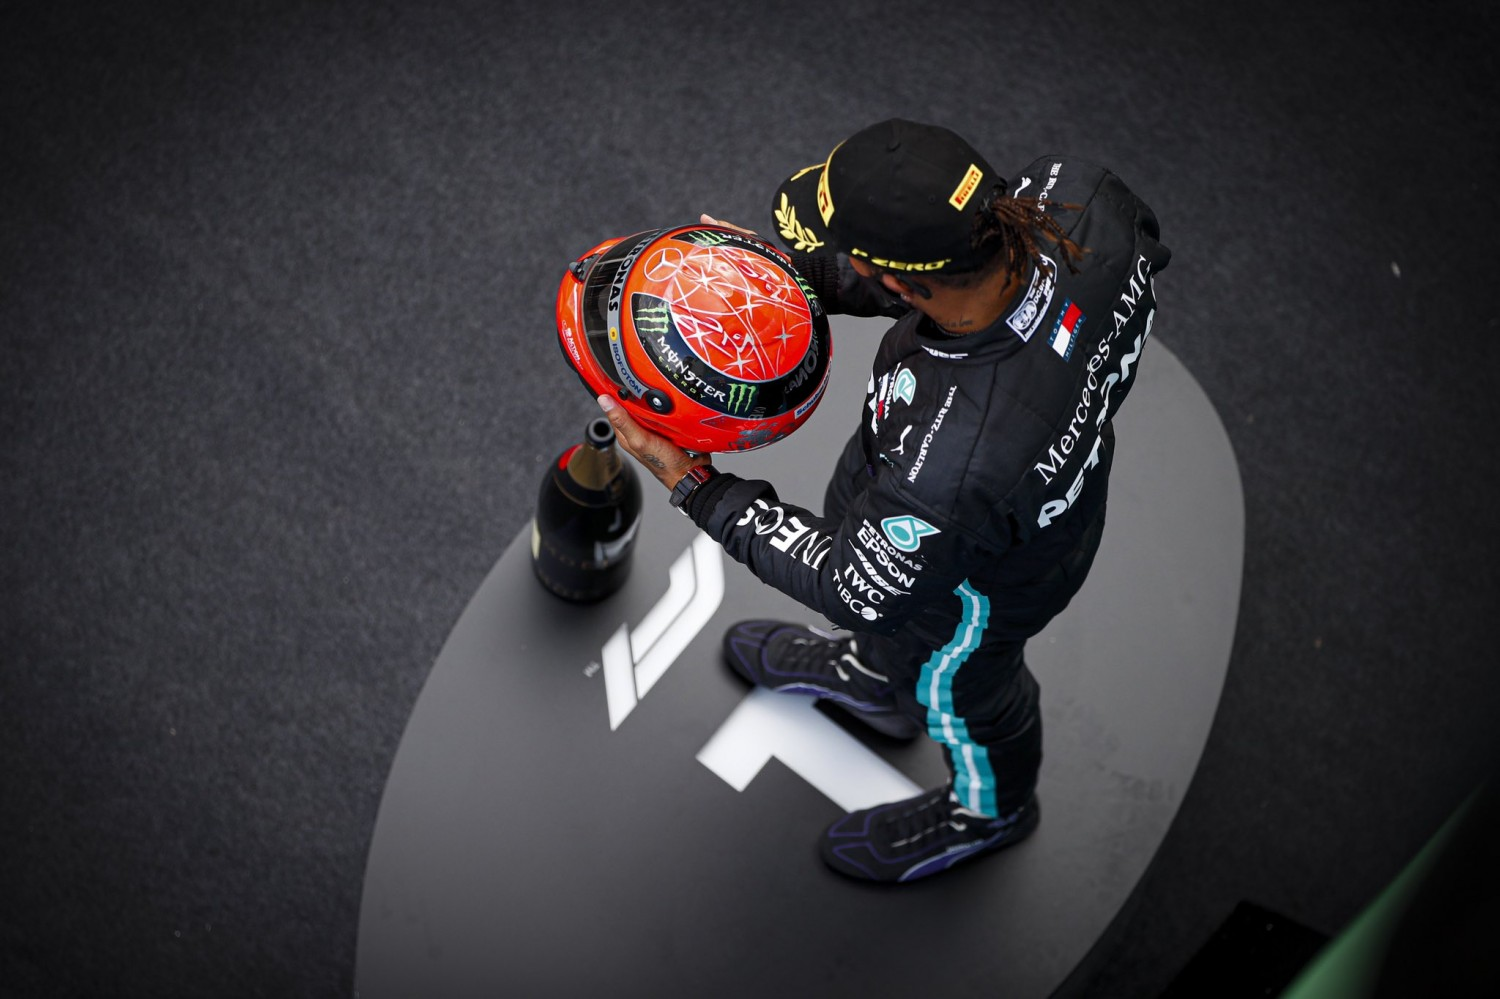 Hamilton 'honoured' by Schumacher tribute for matching record